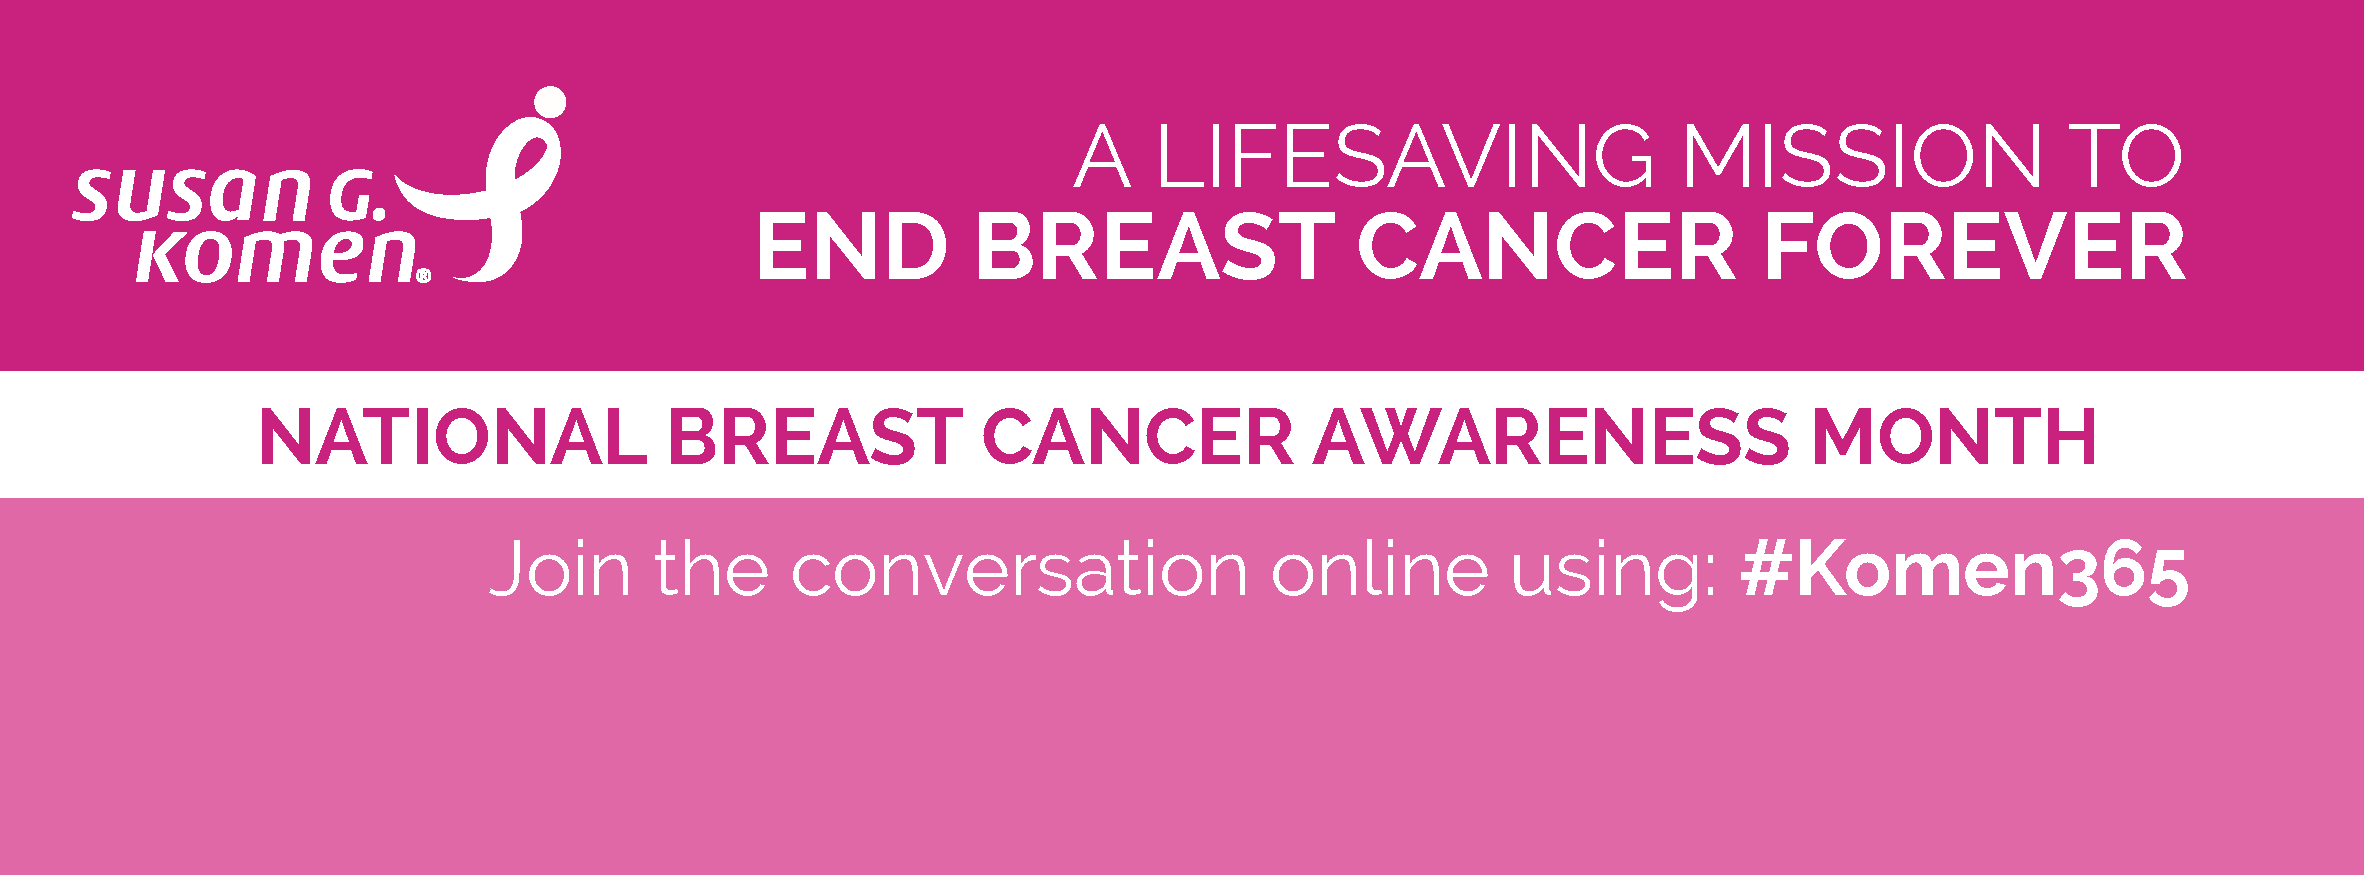 2015KomenNCR-NBCAMGraphicFaceookCover-General